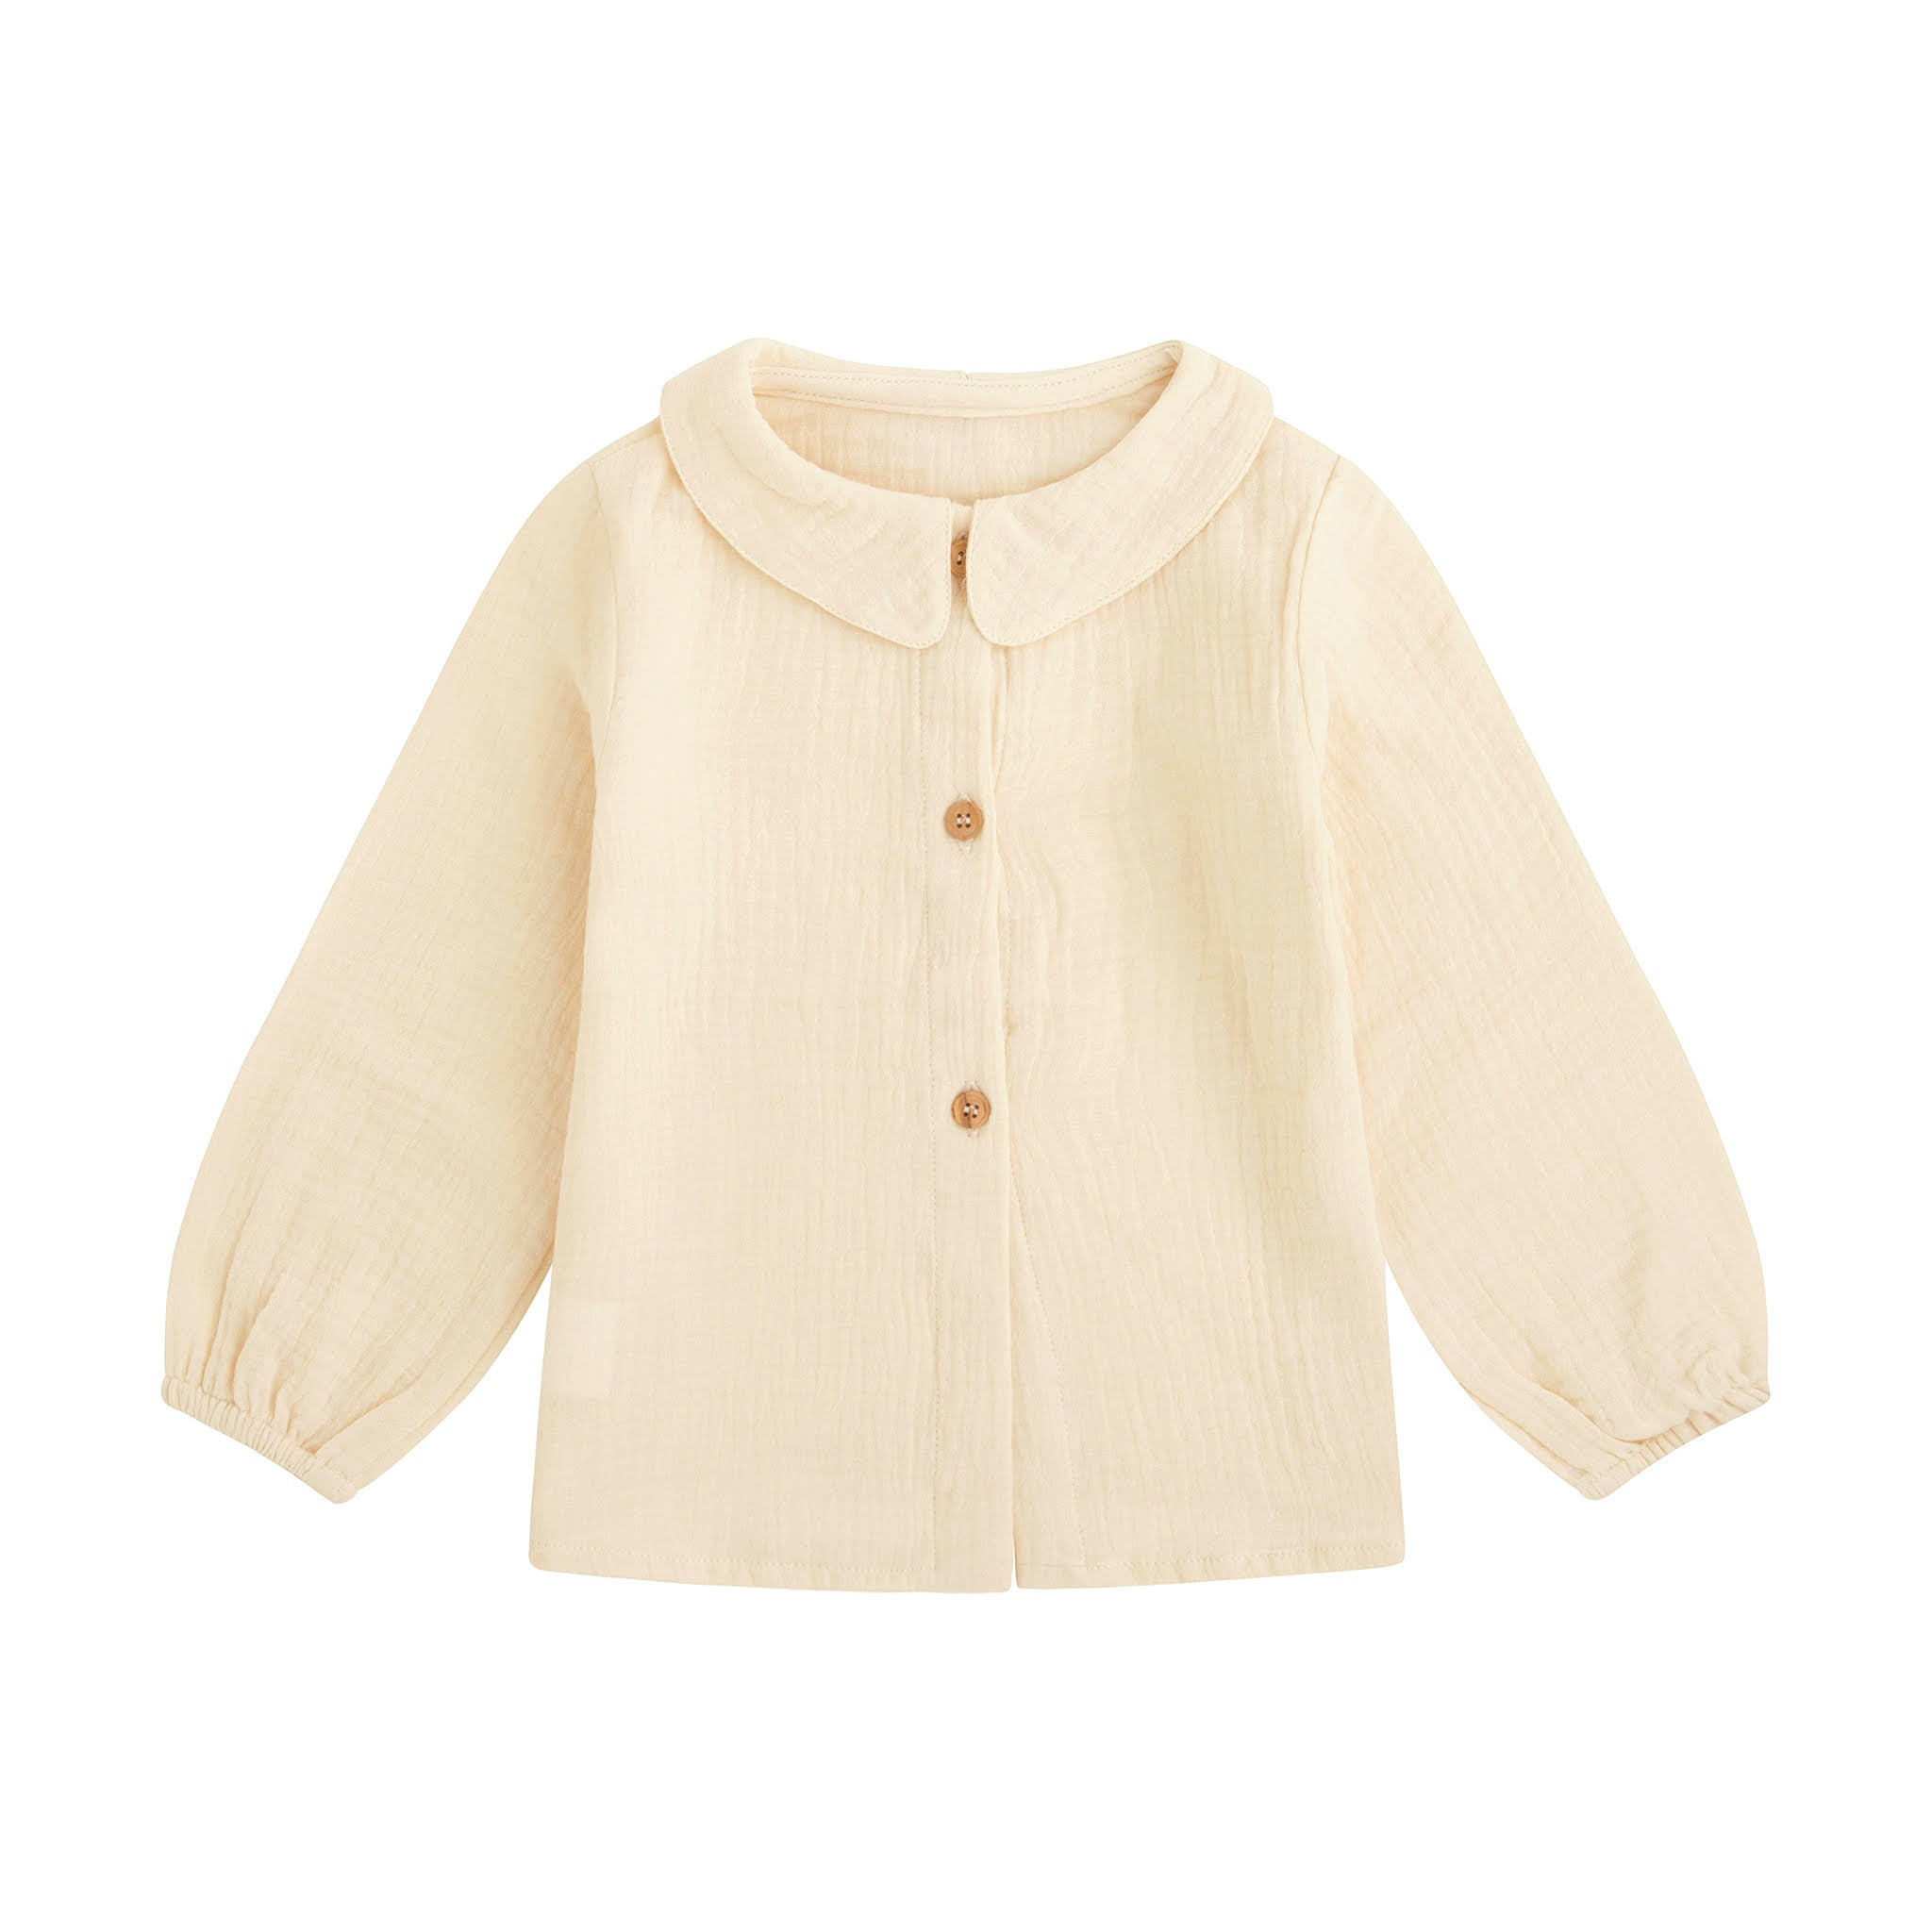 cream baby blouse in soft bambula with peter pan collar and wooden buttons down the back